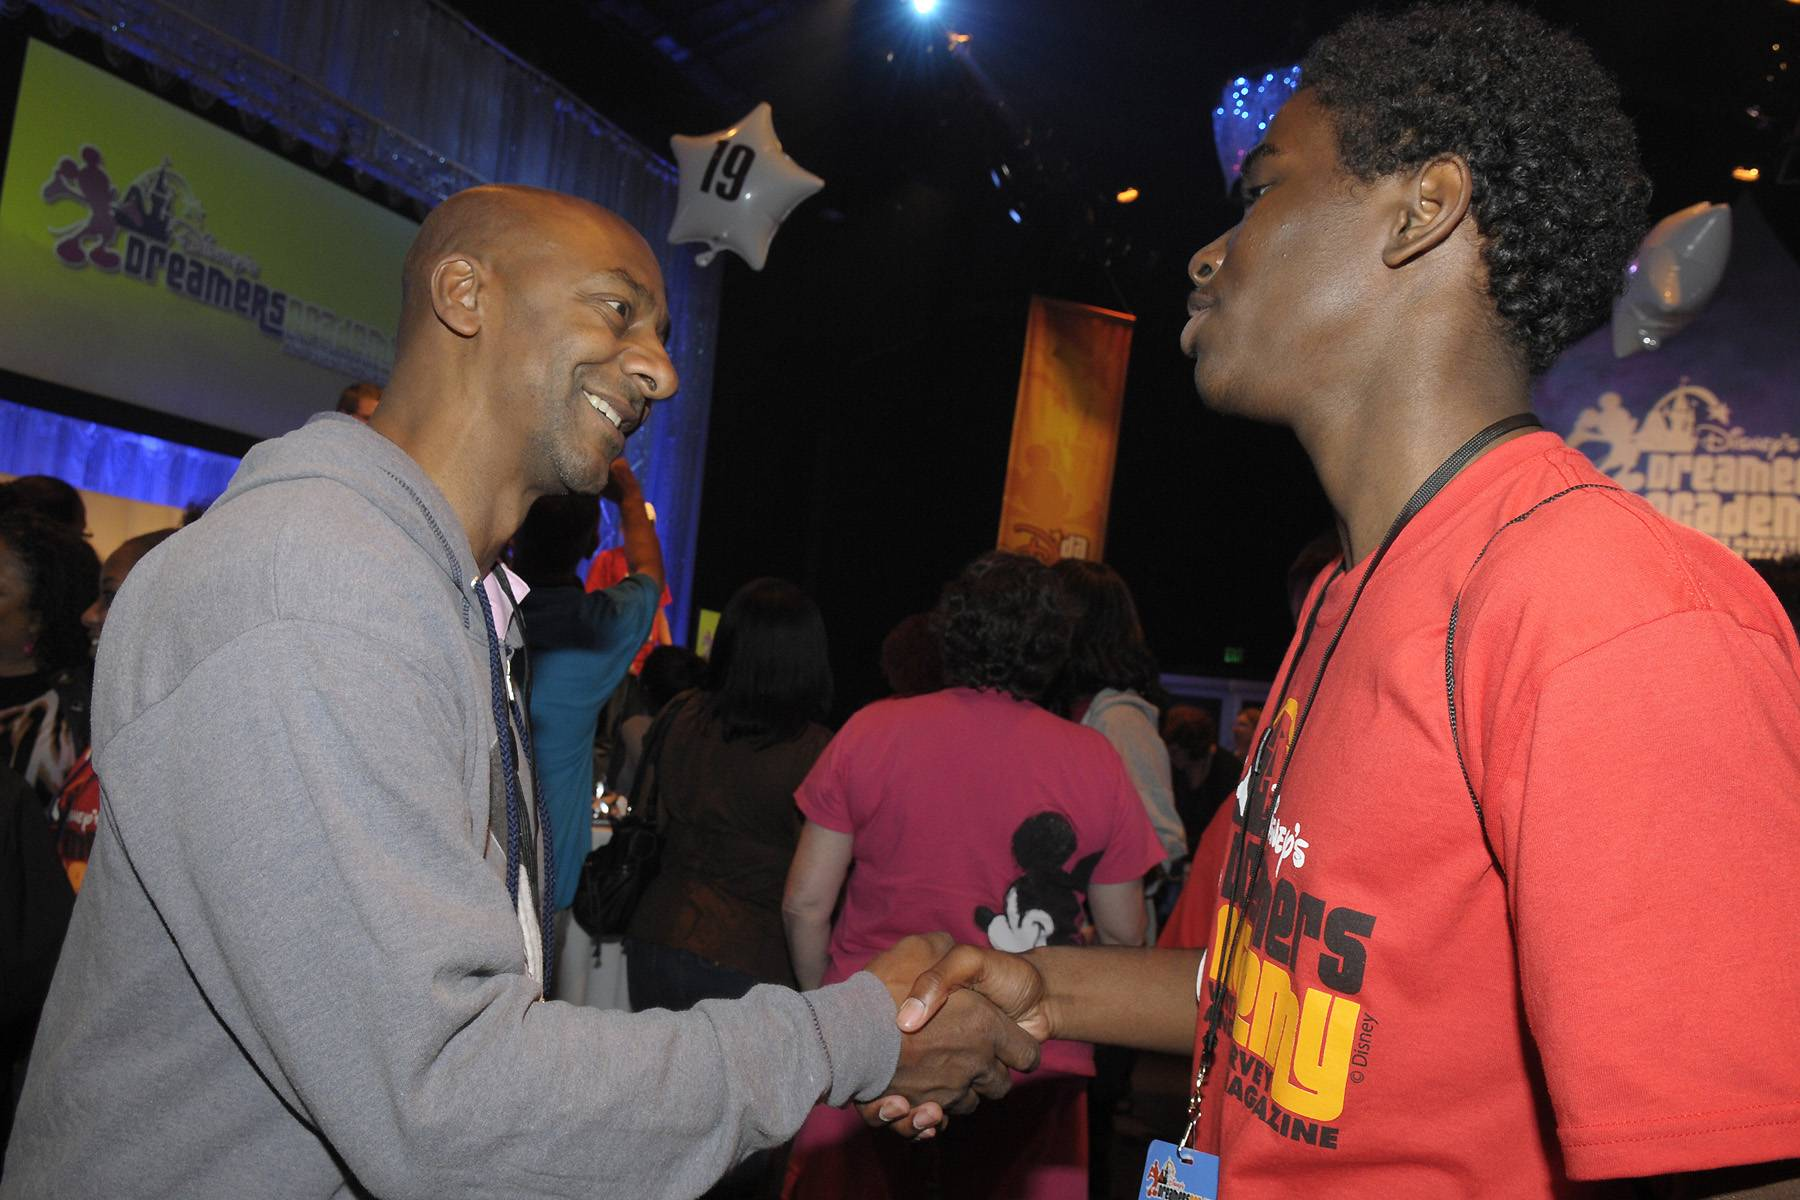 In Good Hands - BET Networks President Stephen Hill greeted Julian Canery, a Dreamer from Brooklyn, NY, at a career networking event on March 10.  (Photo: Phelan Ebenhack)